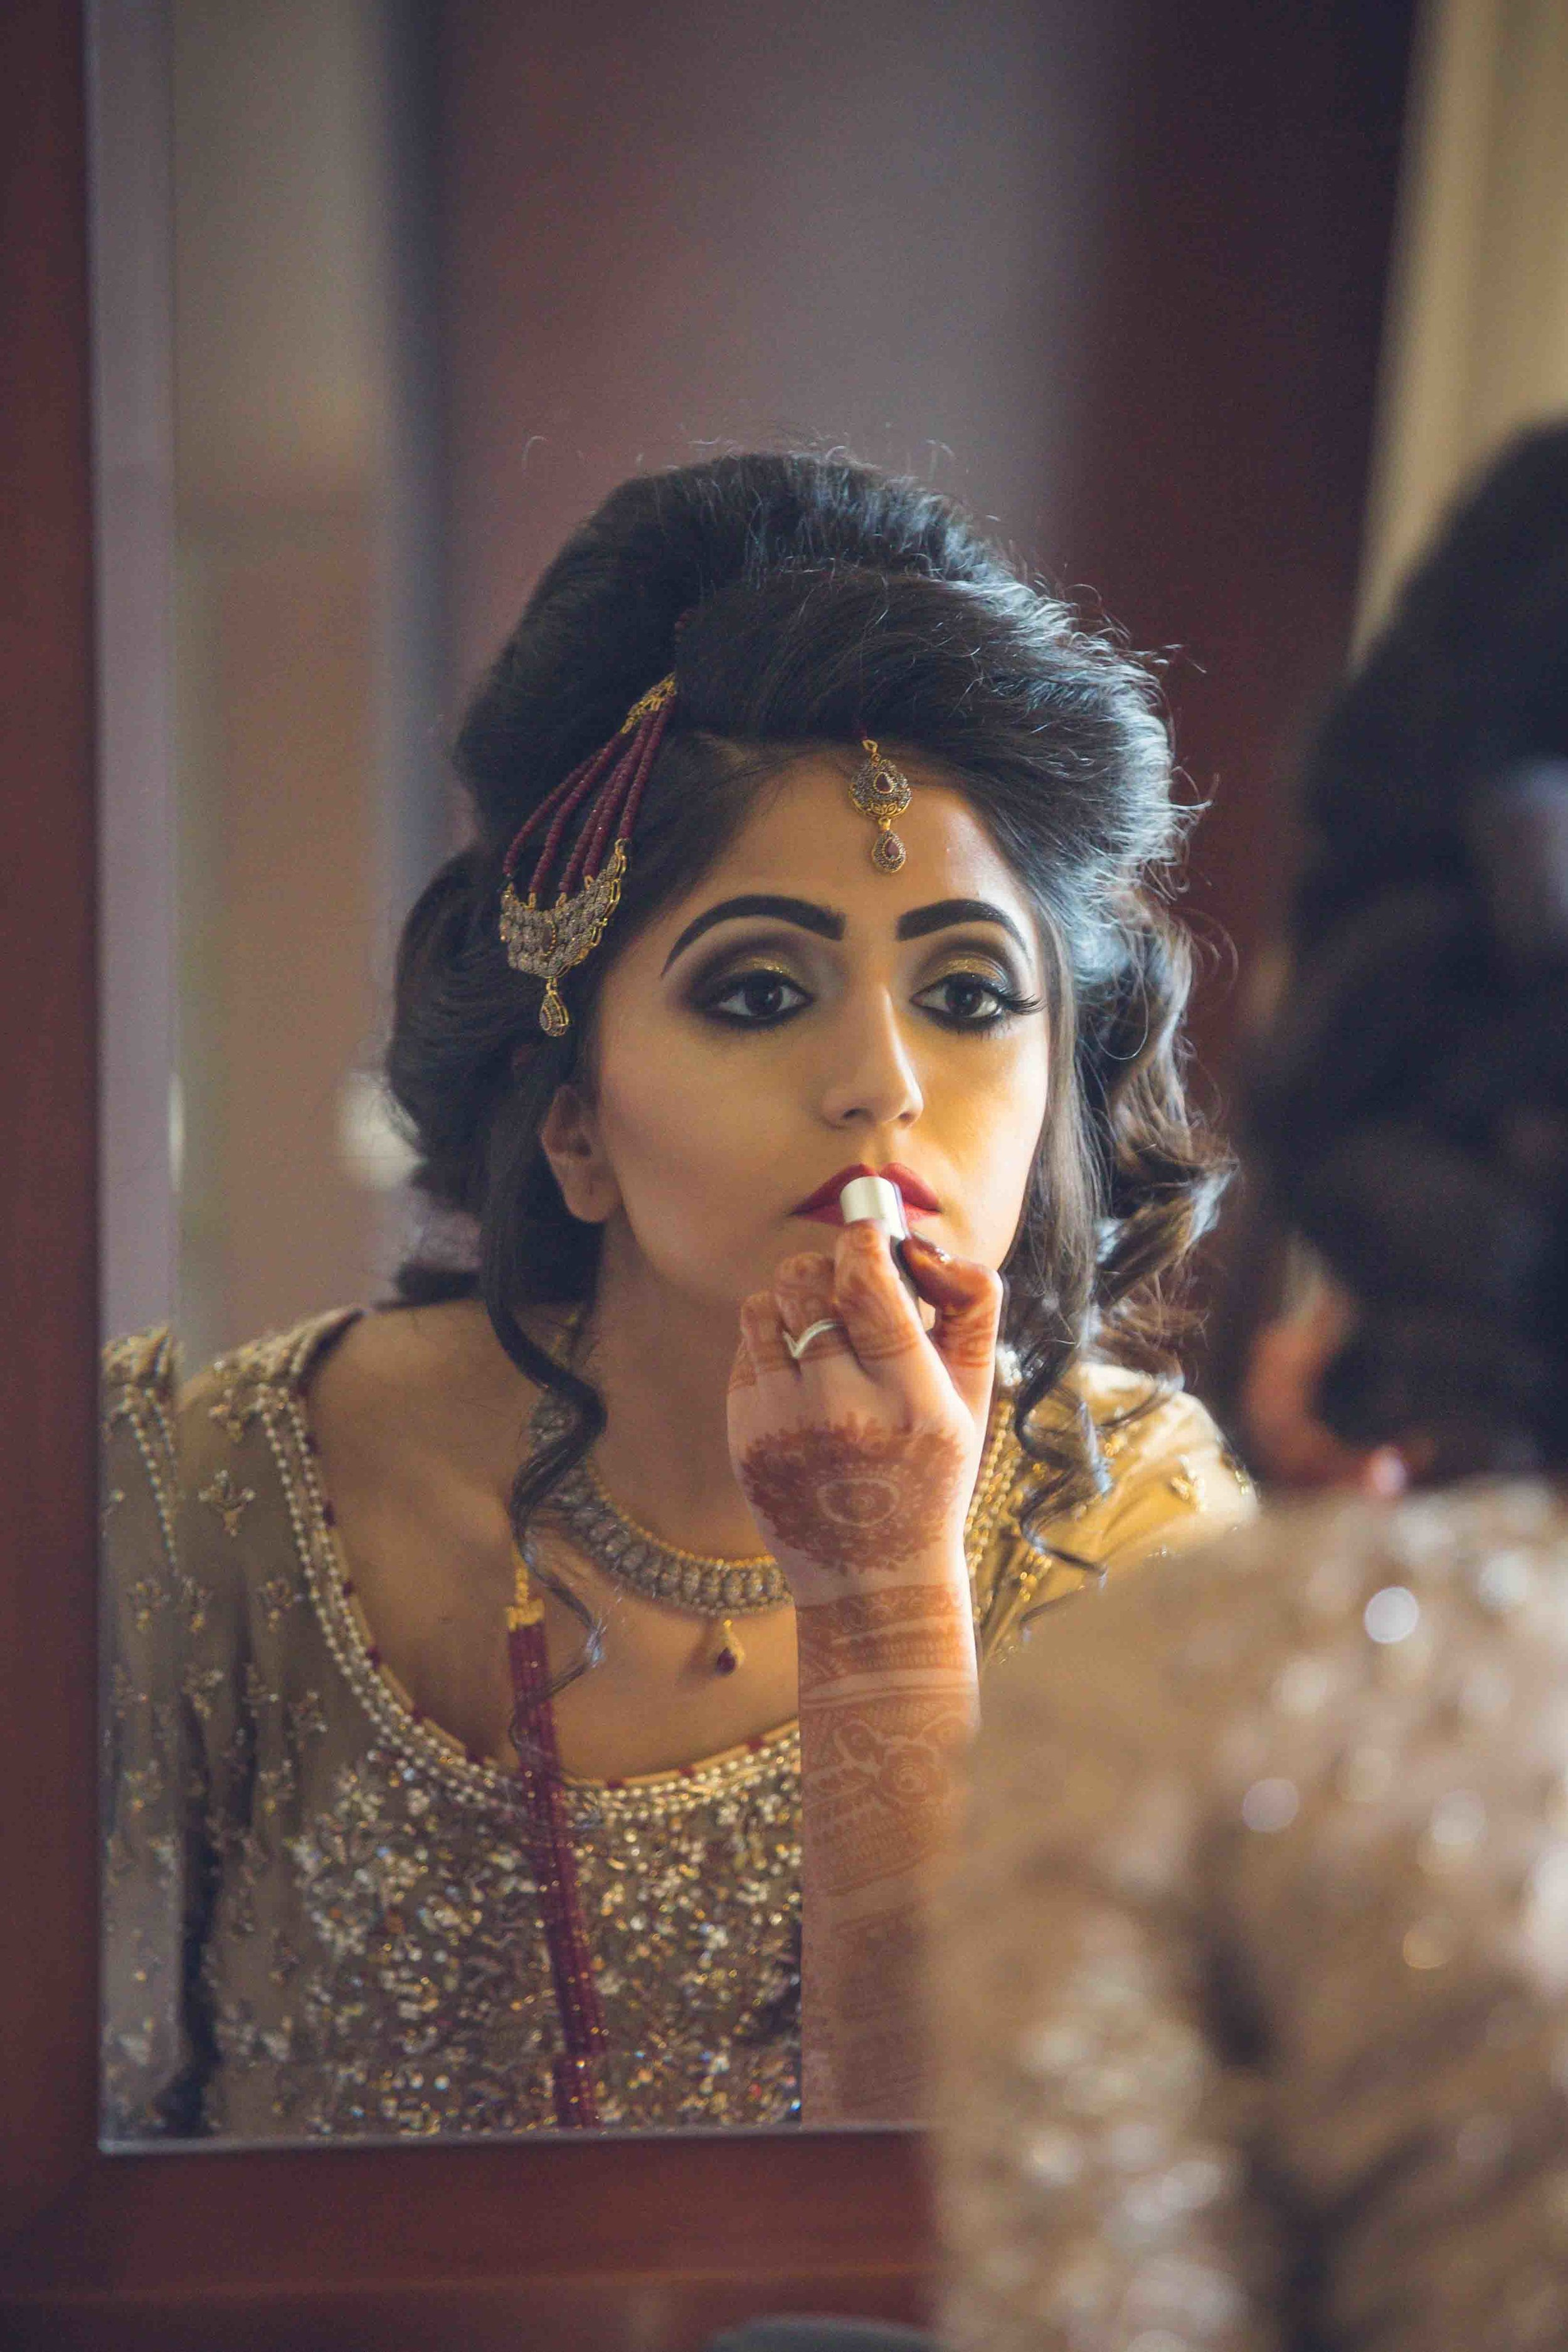 Opu Sultan Photography Asian wedding photography scotland edinburgh glasgow manchester birmingham london-237.jpg